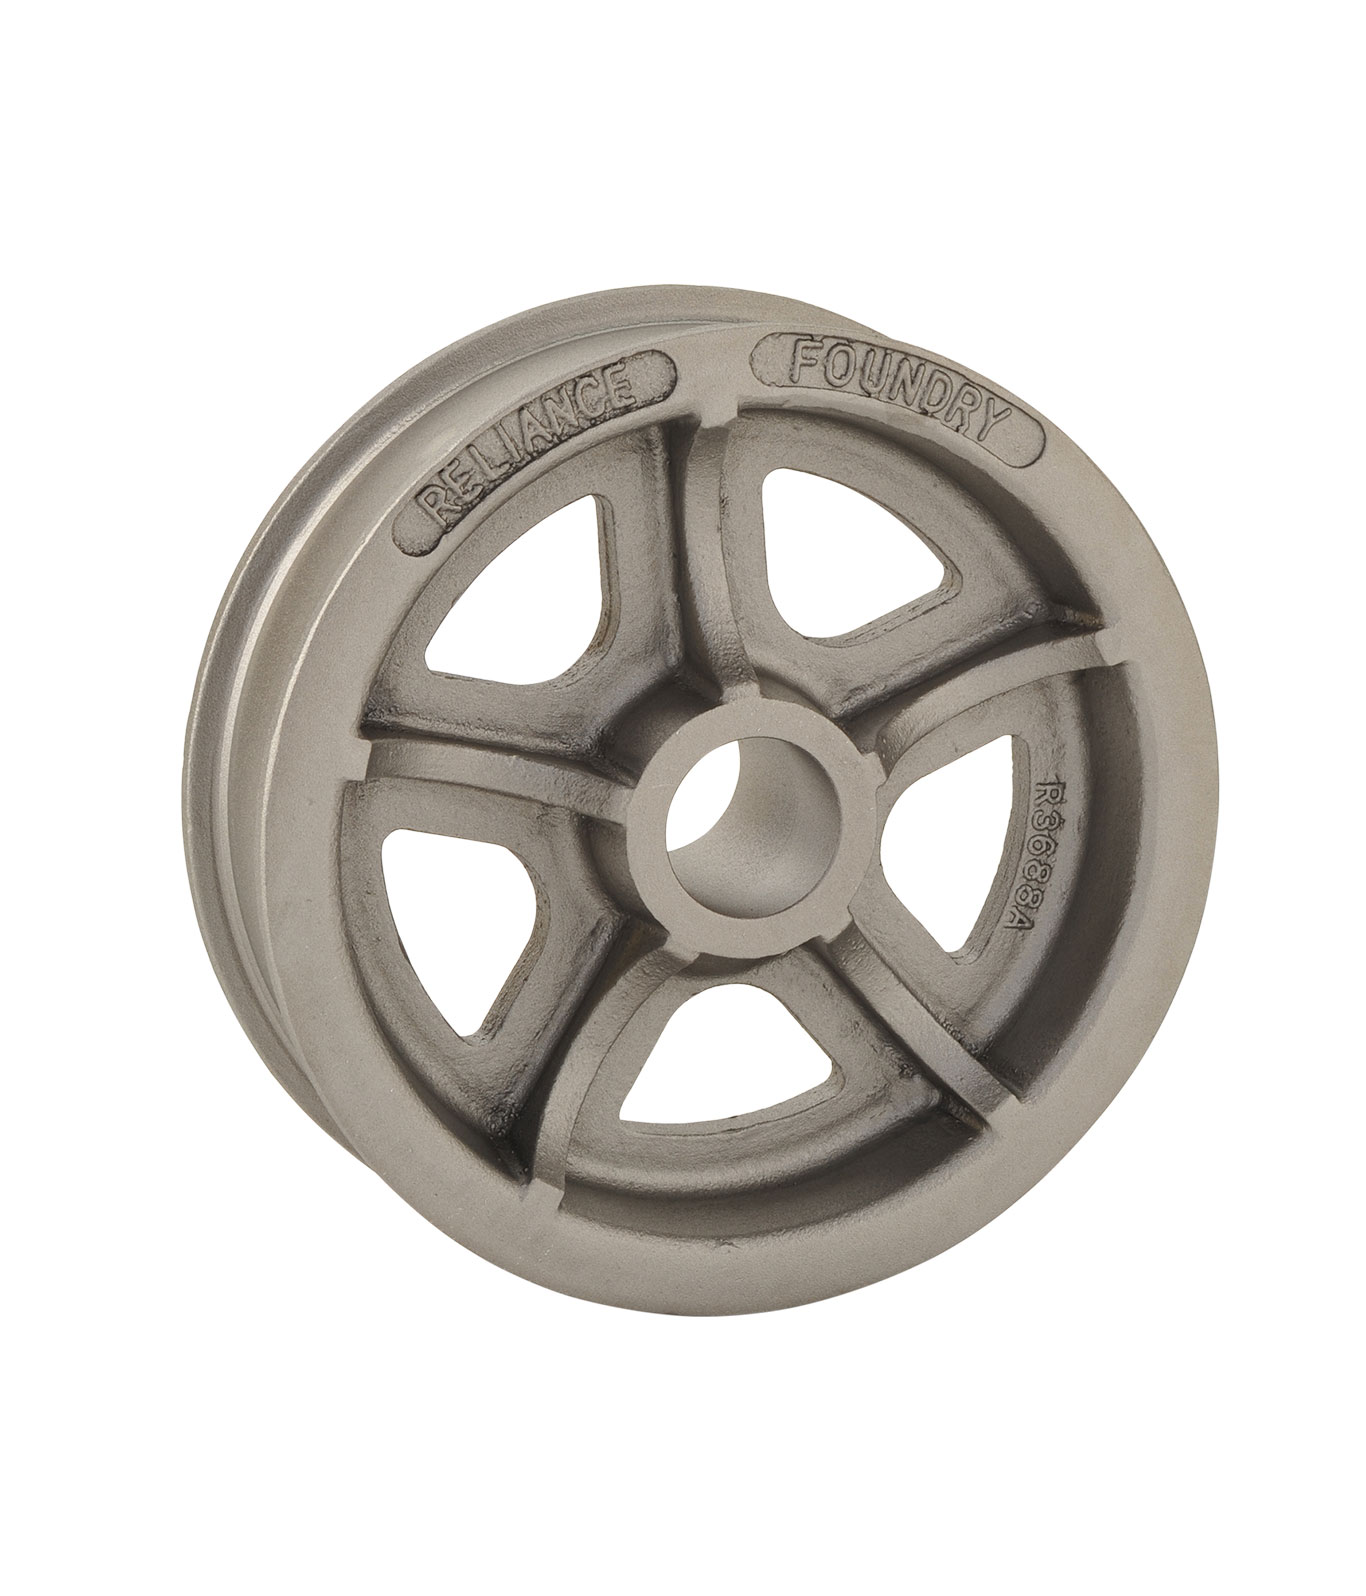 R-3688-A Double Flanged Wheel